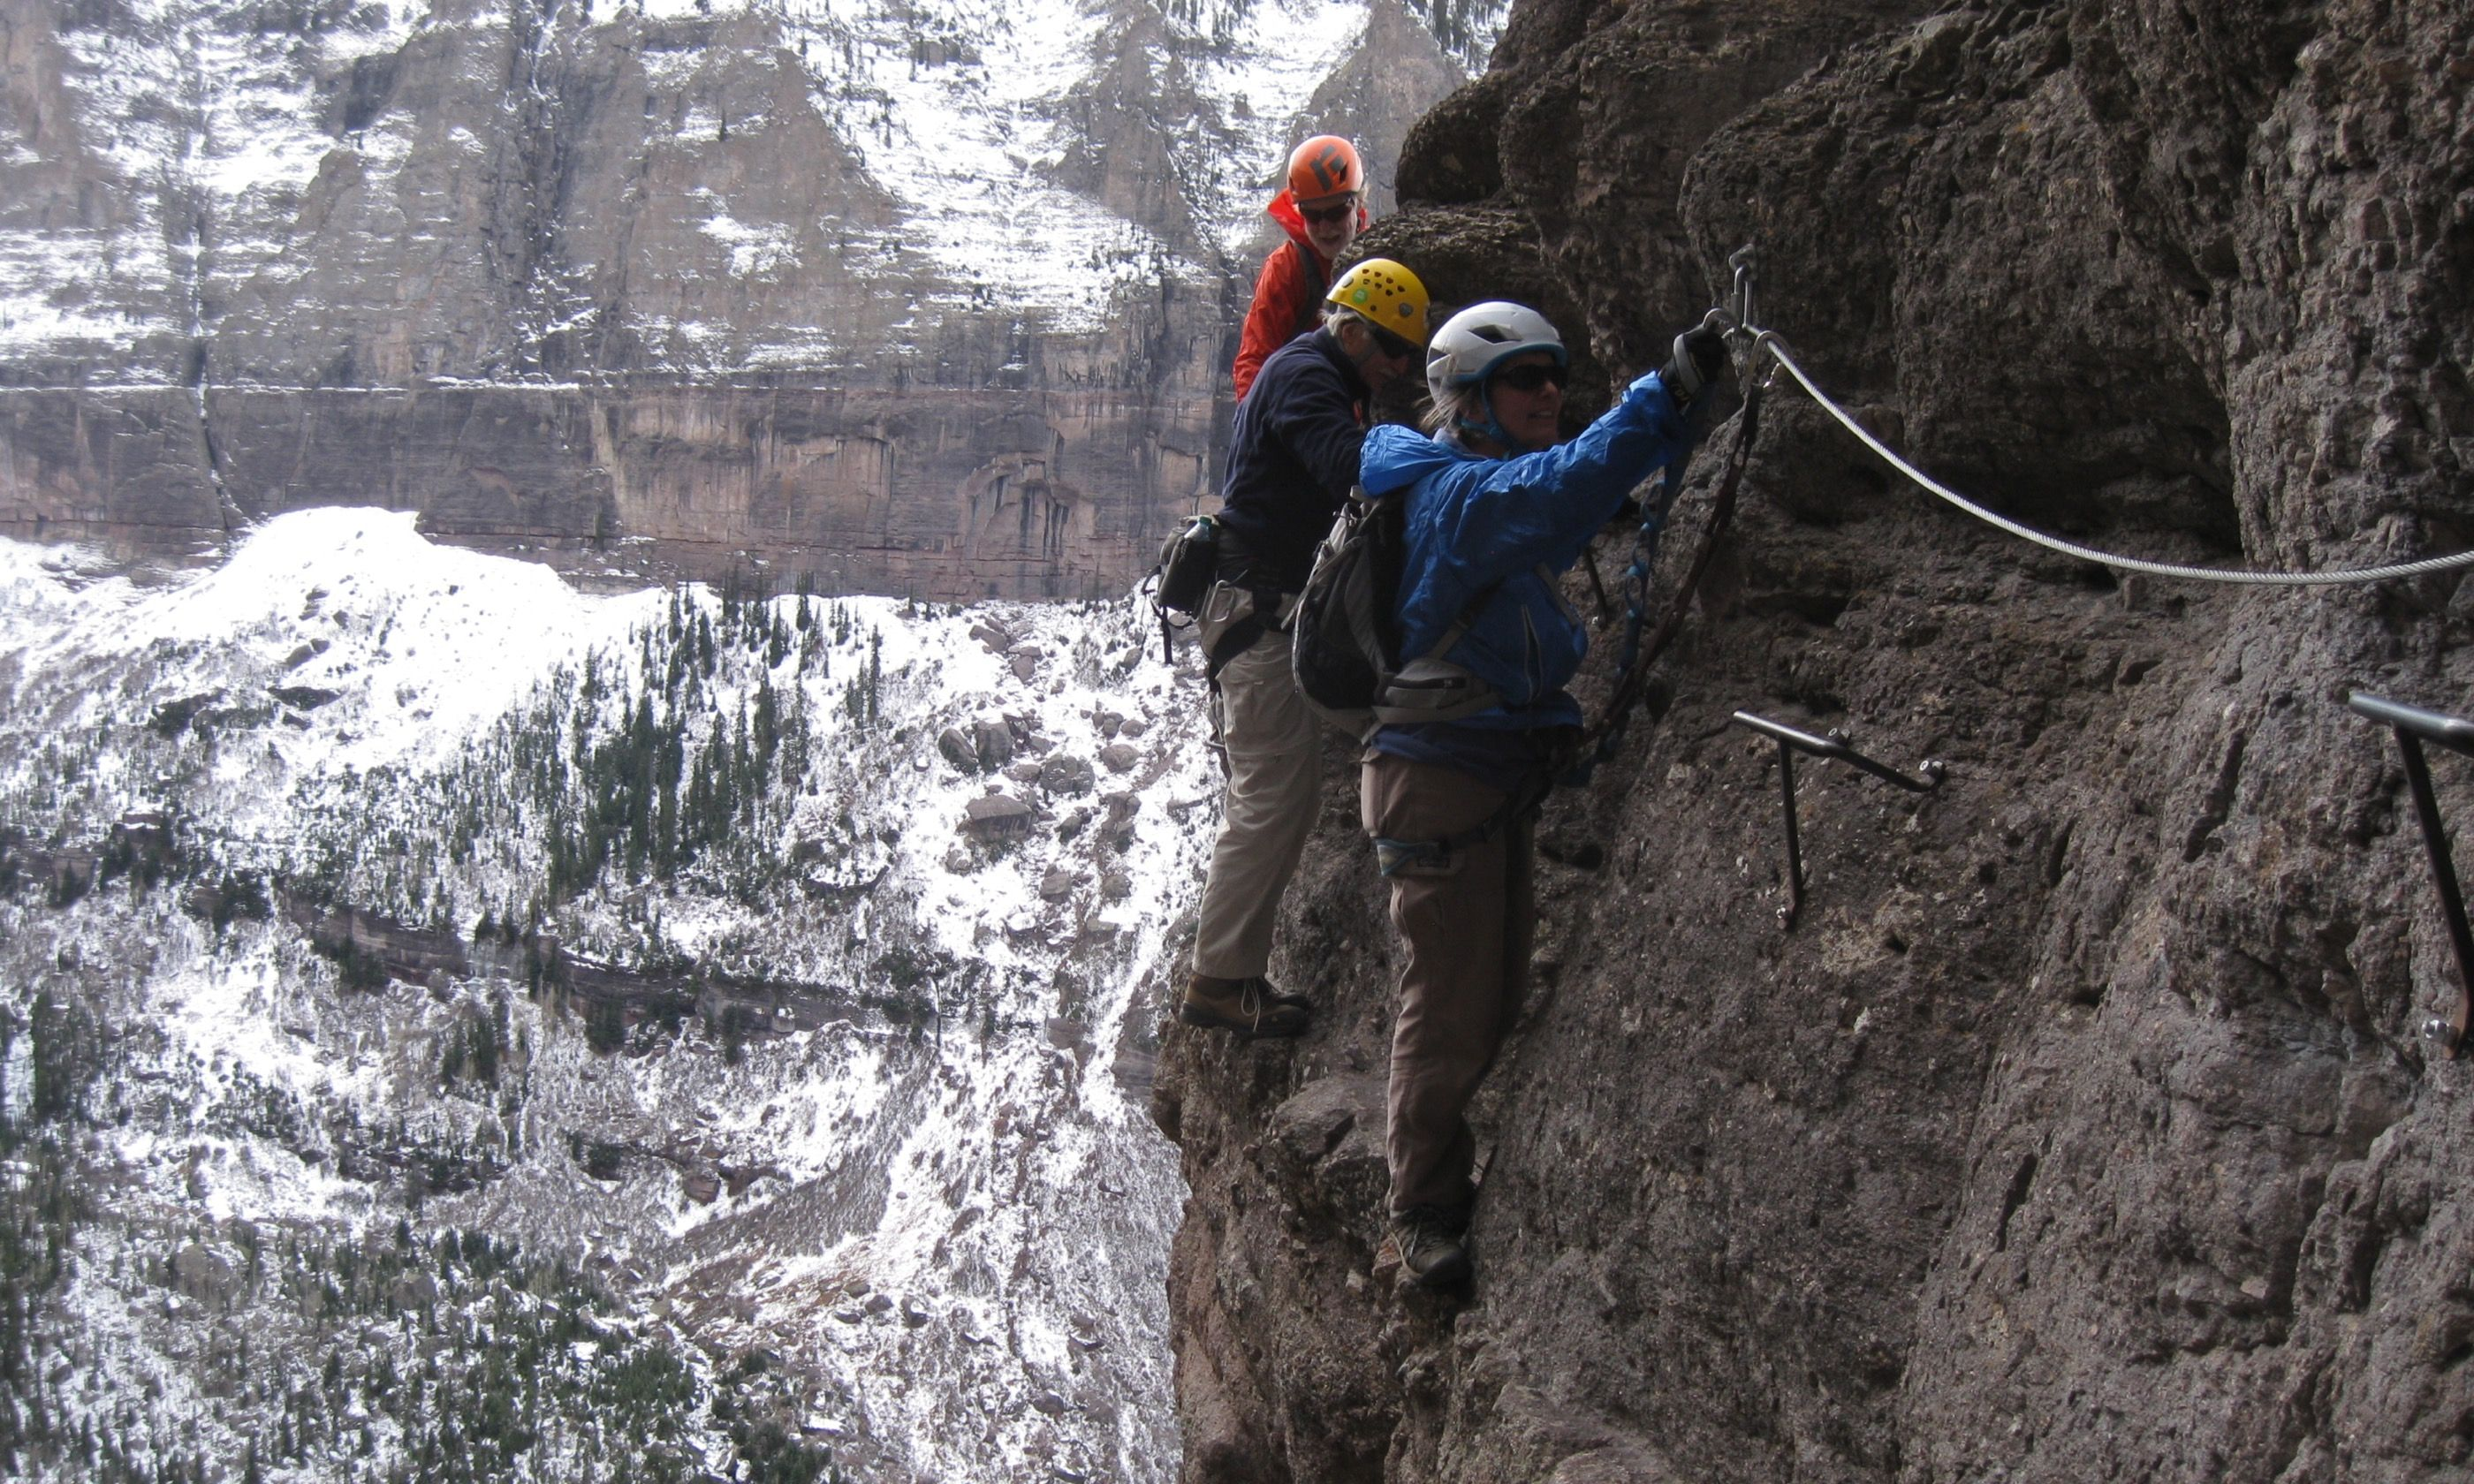 Climbers traverse along the via ferrata route in Telluride (Dreamstime)